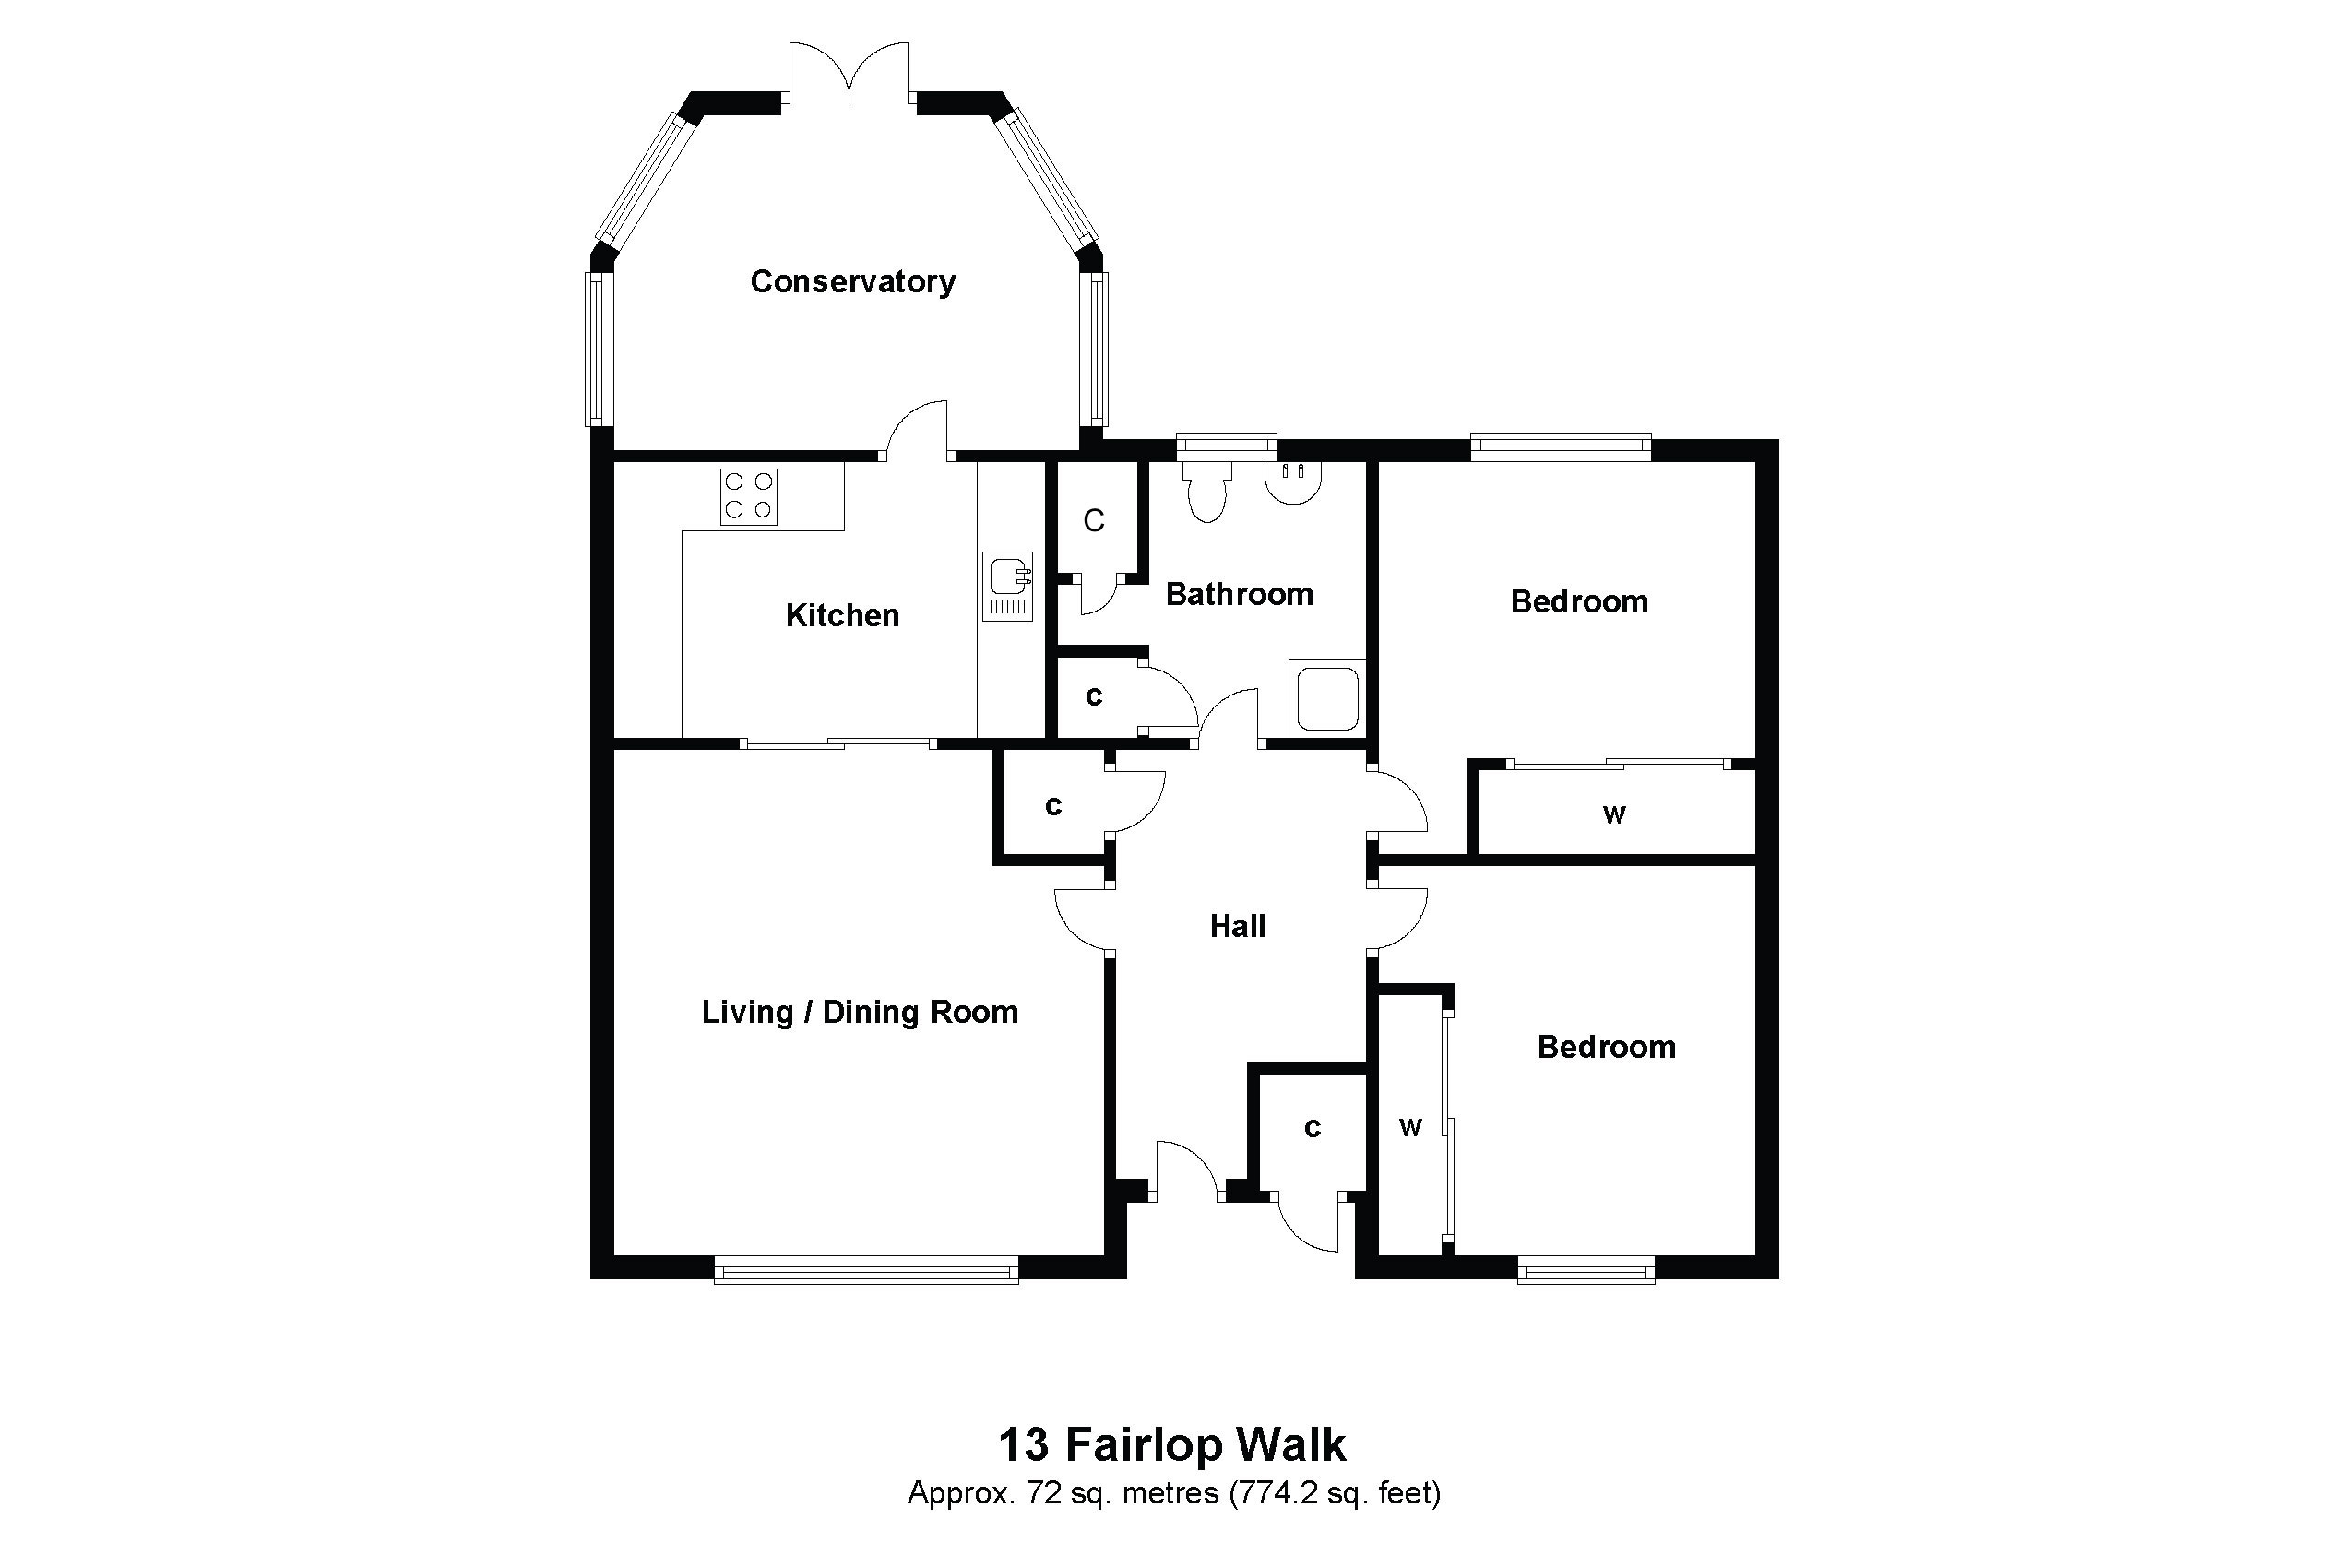 13 Fairlop Walk Floorplan